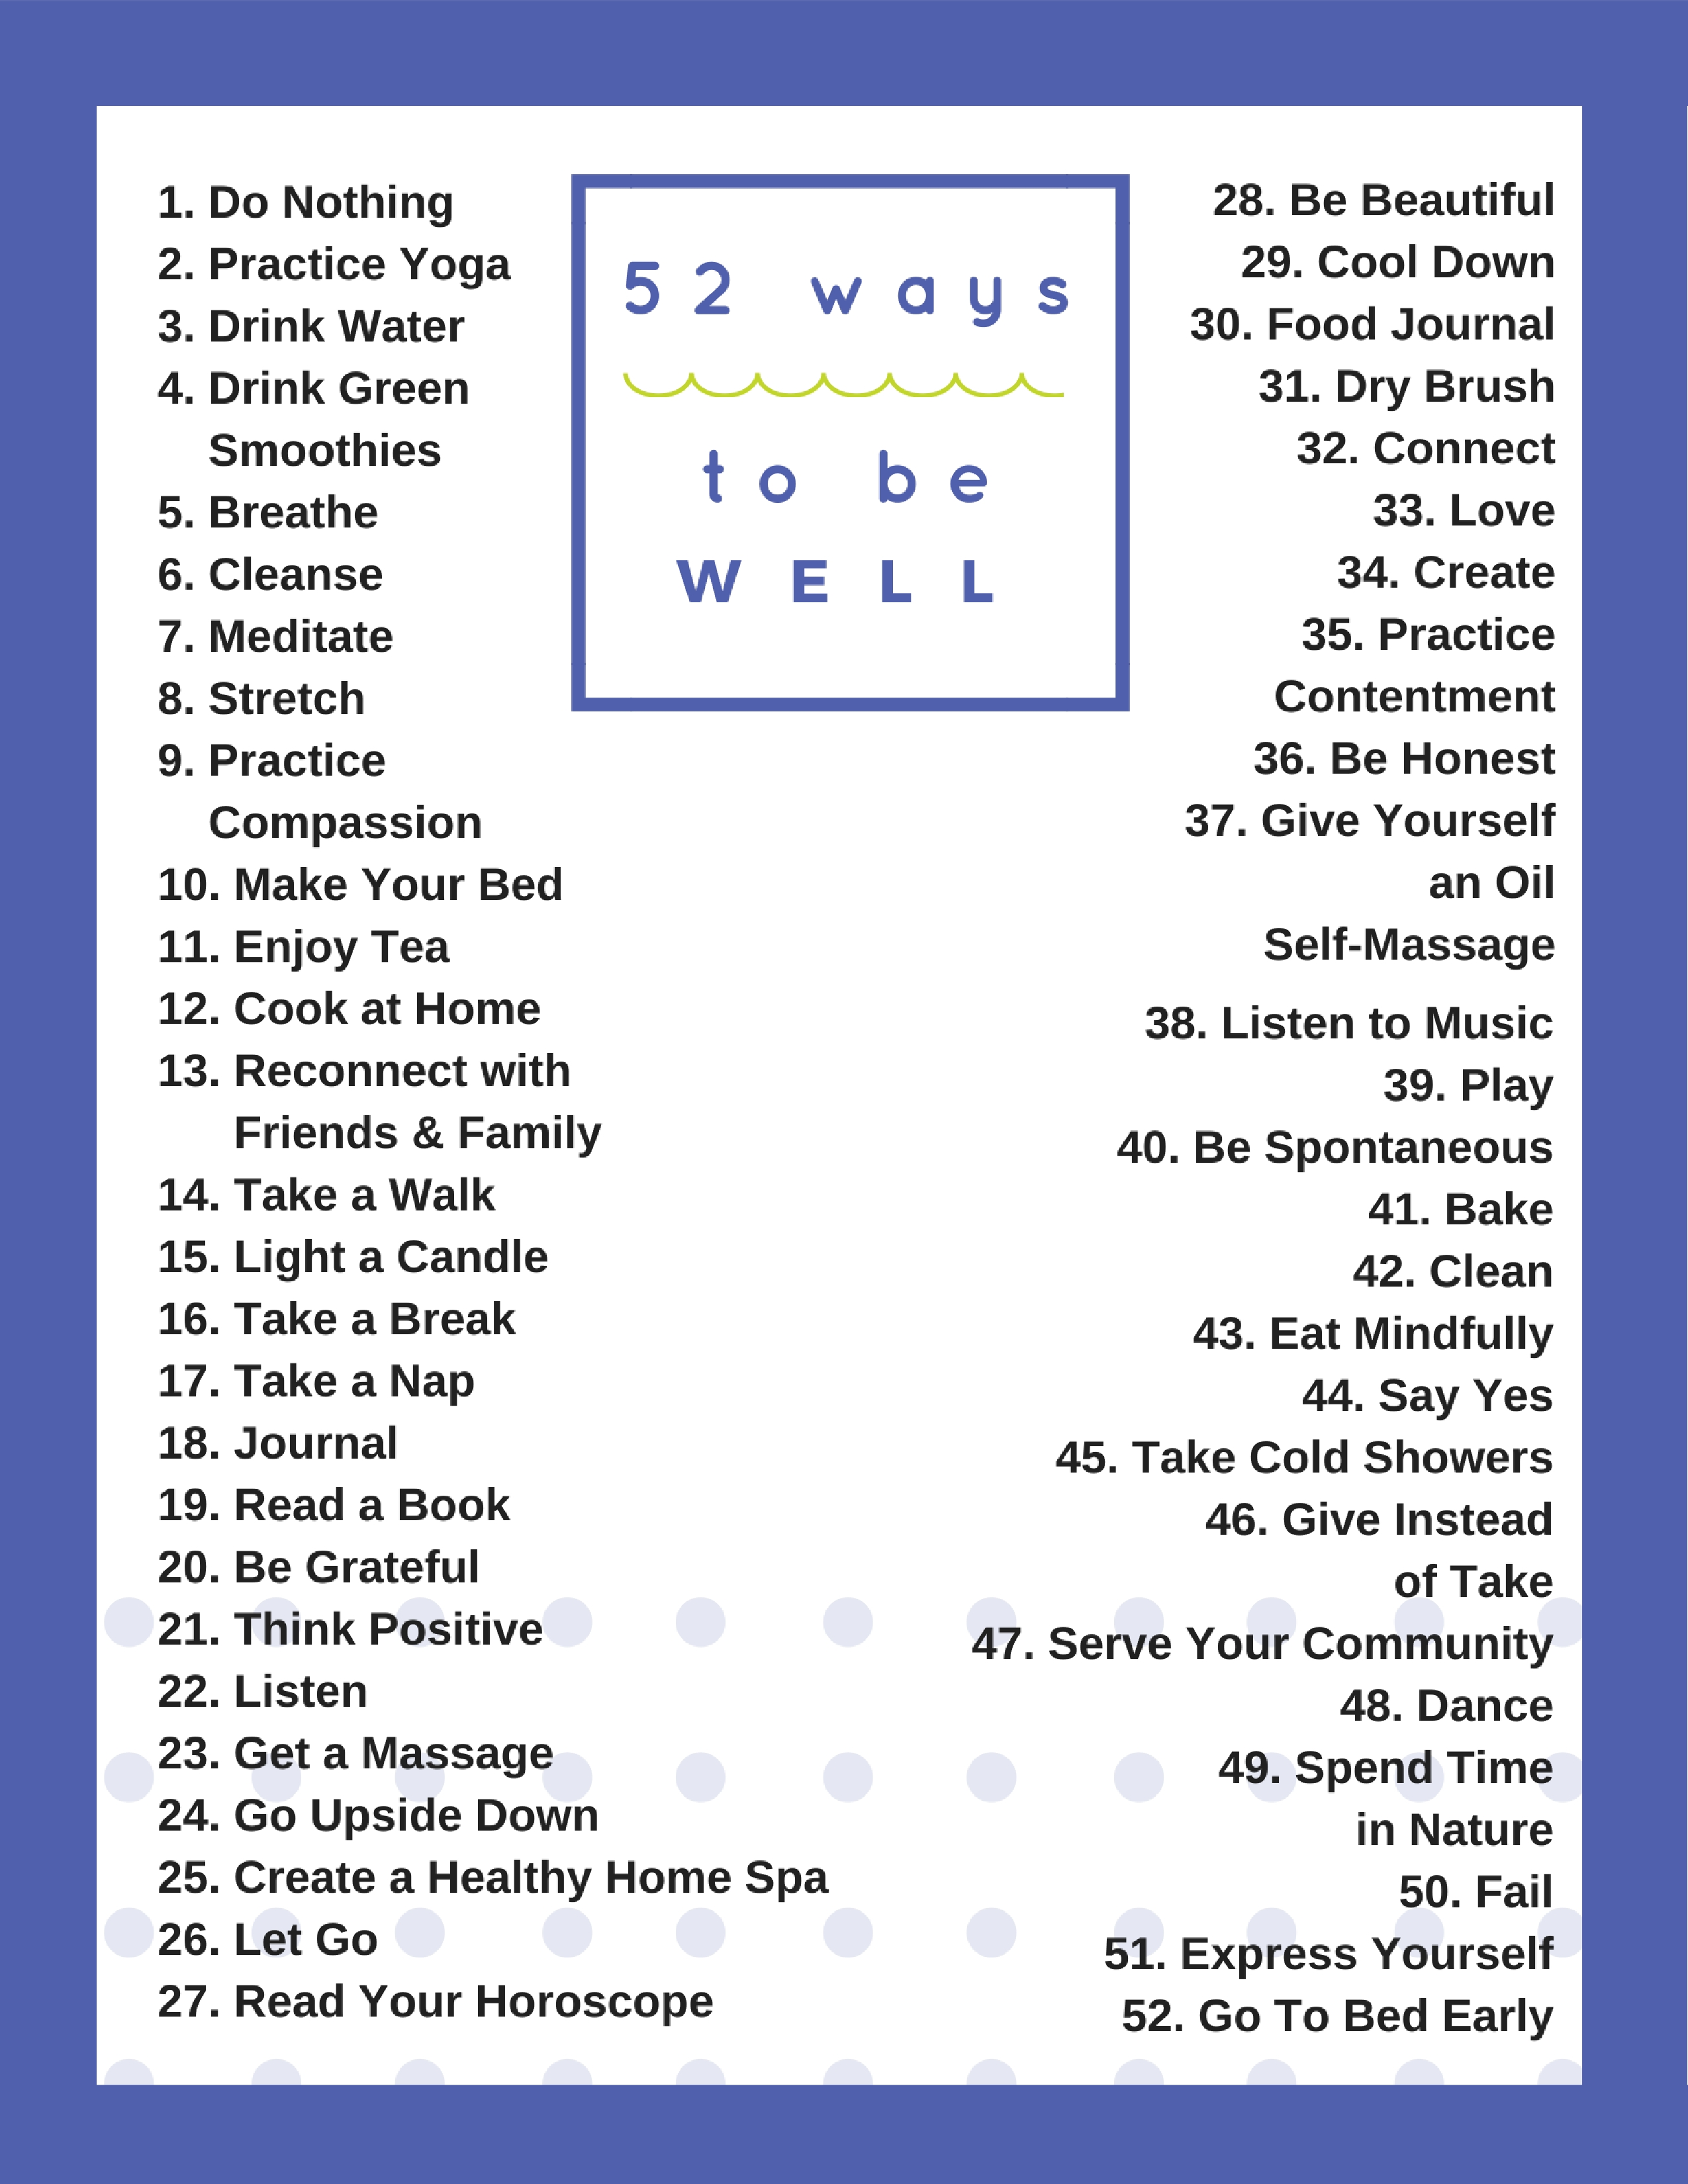 52 ways to be well